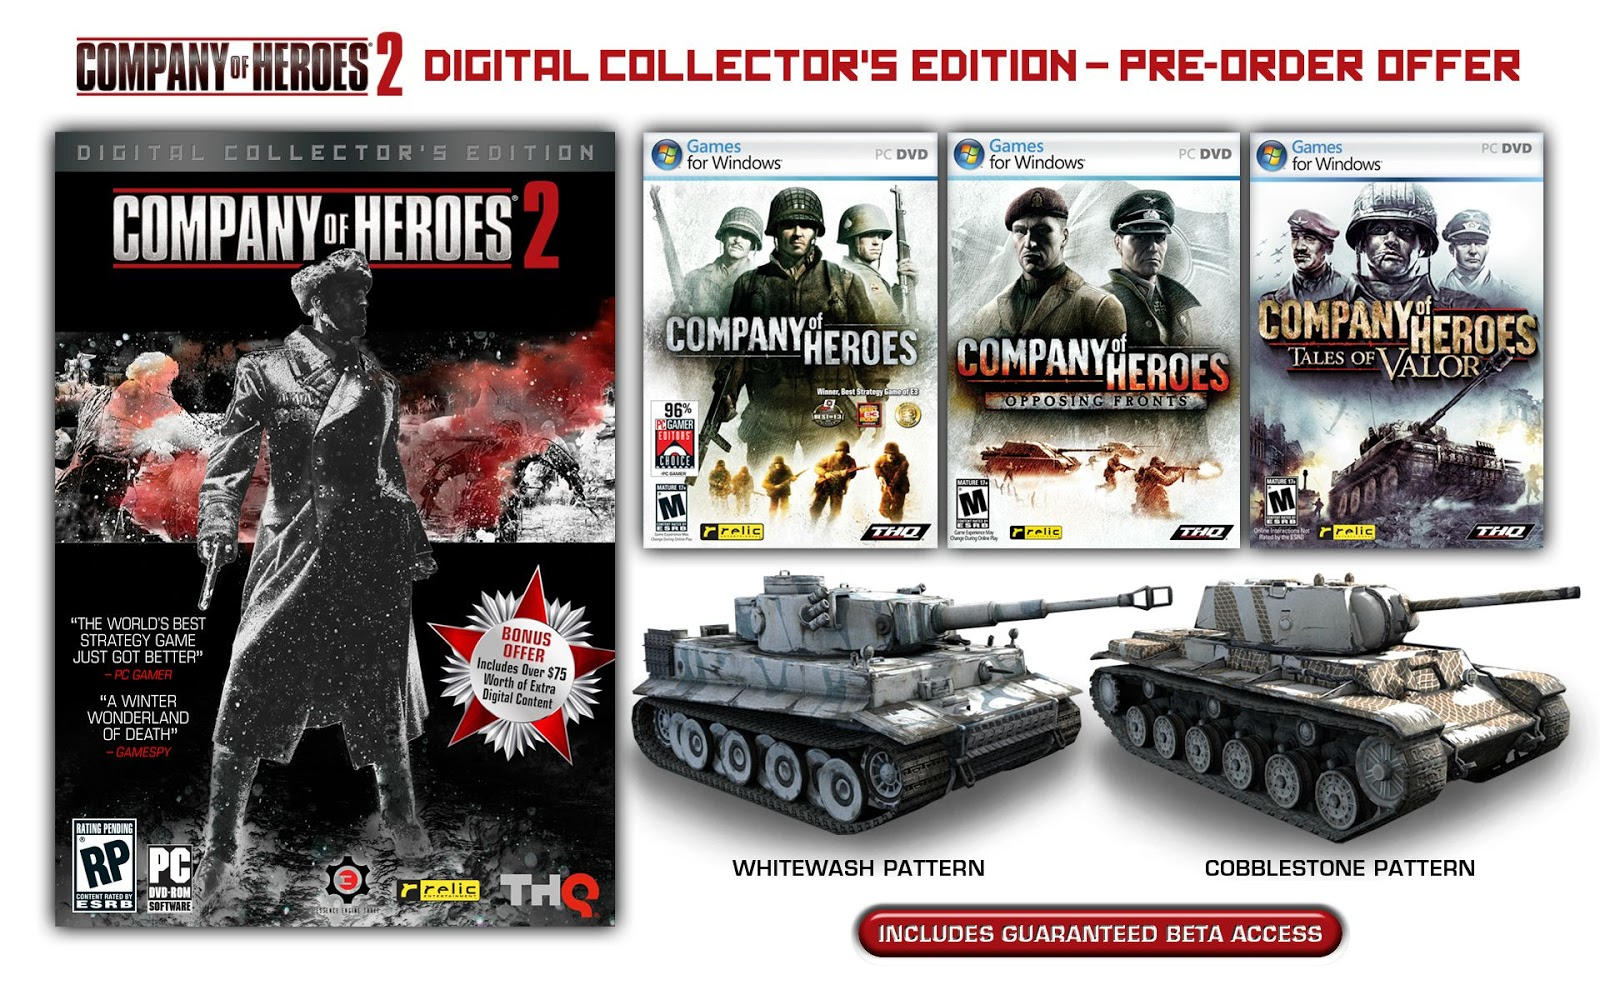 Coh 2 Case Blue : Welcome to spyware pc shop: company of heroes 2 collectors edition